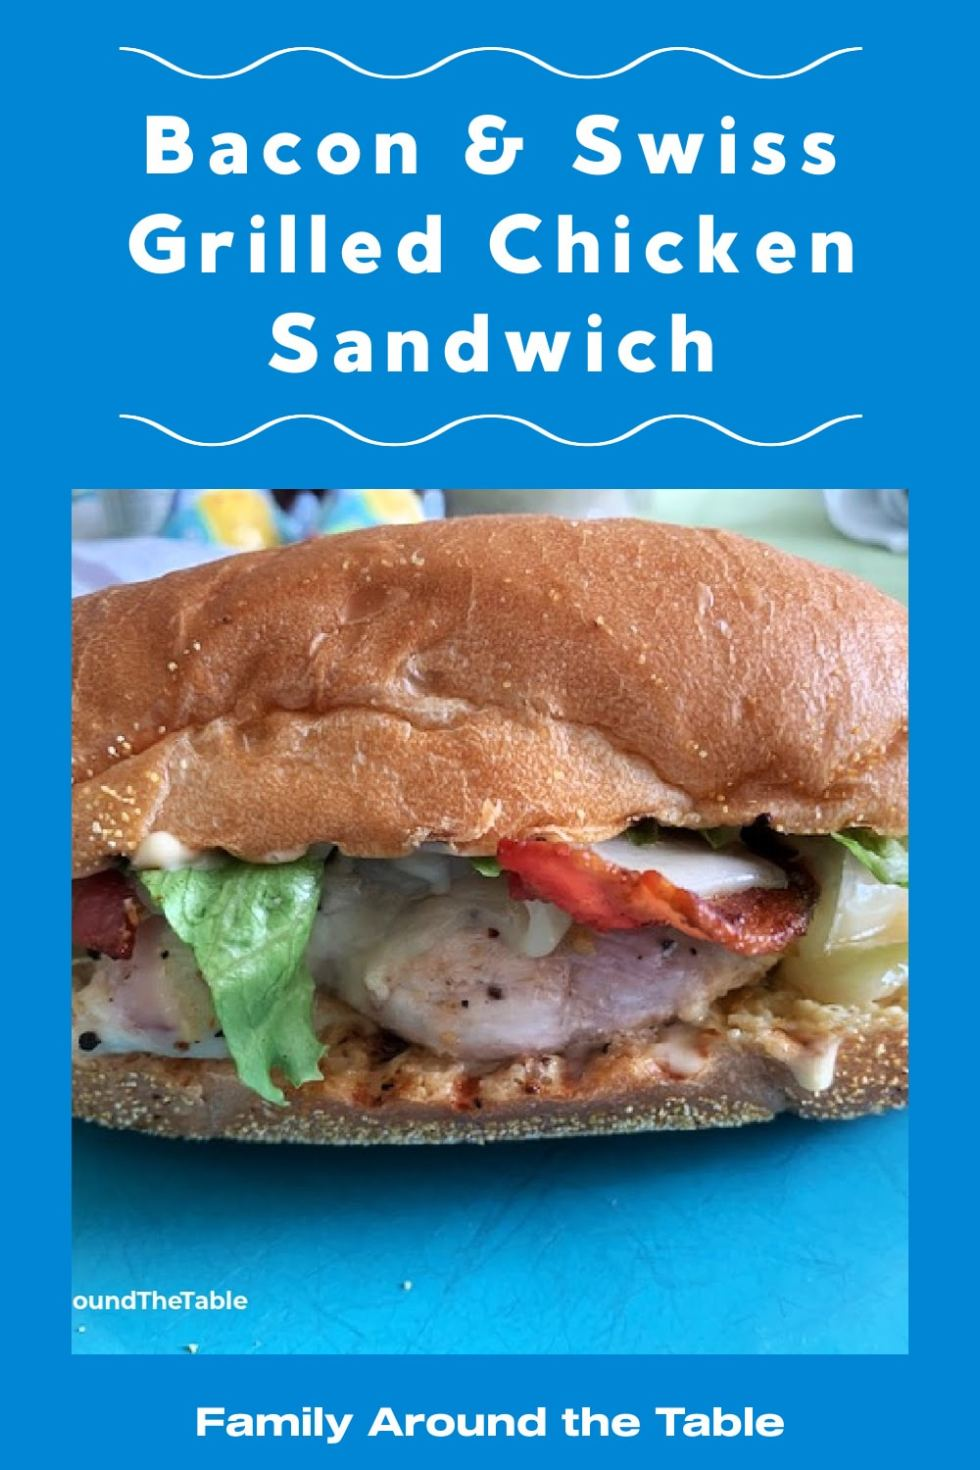 Bacon and Swiss Grilled Chicken Sandwich Pinterest image.